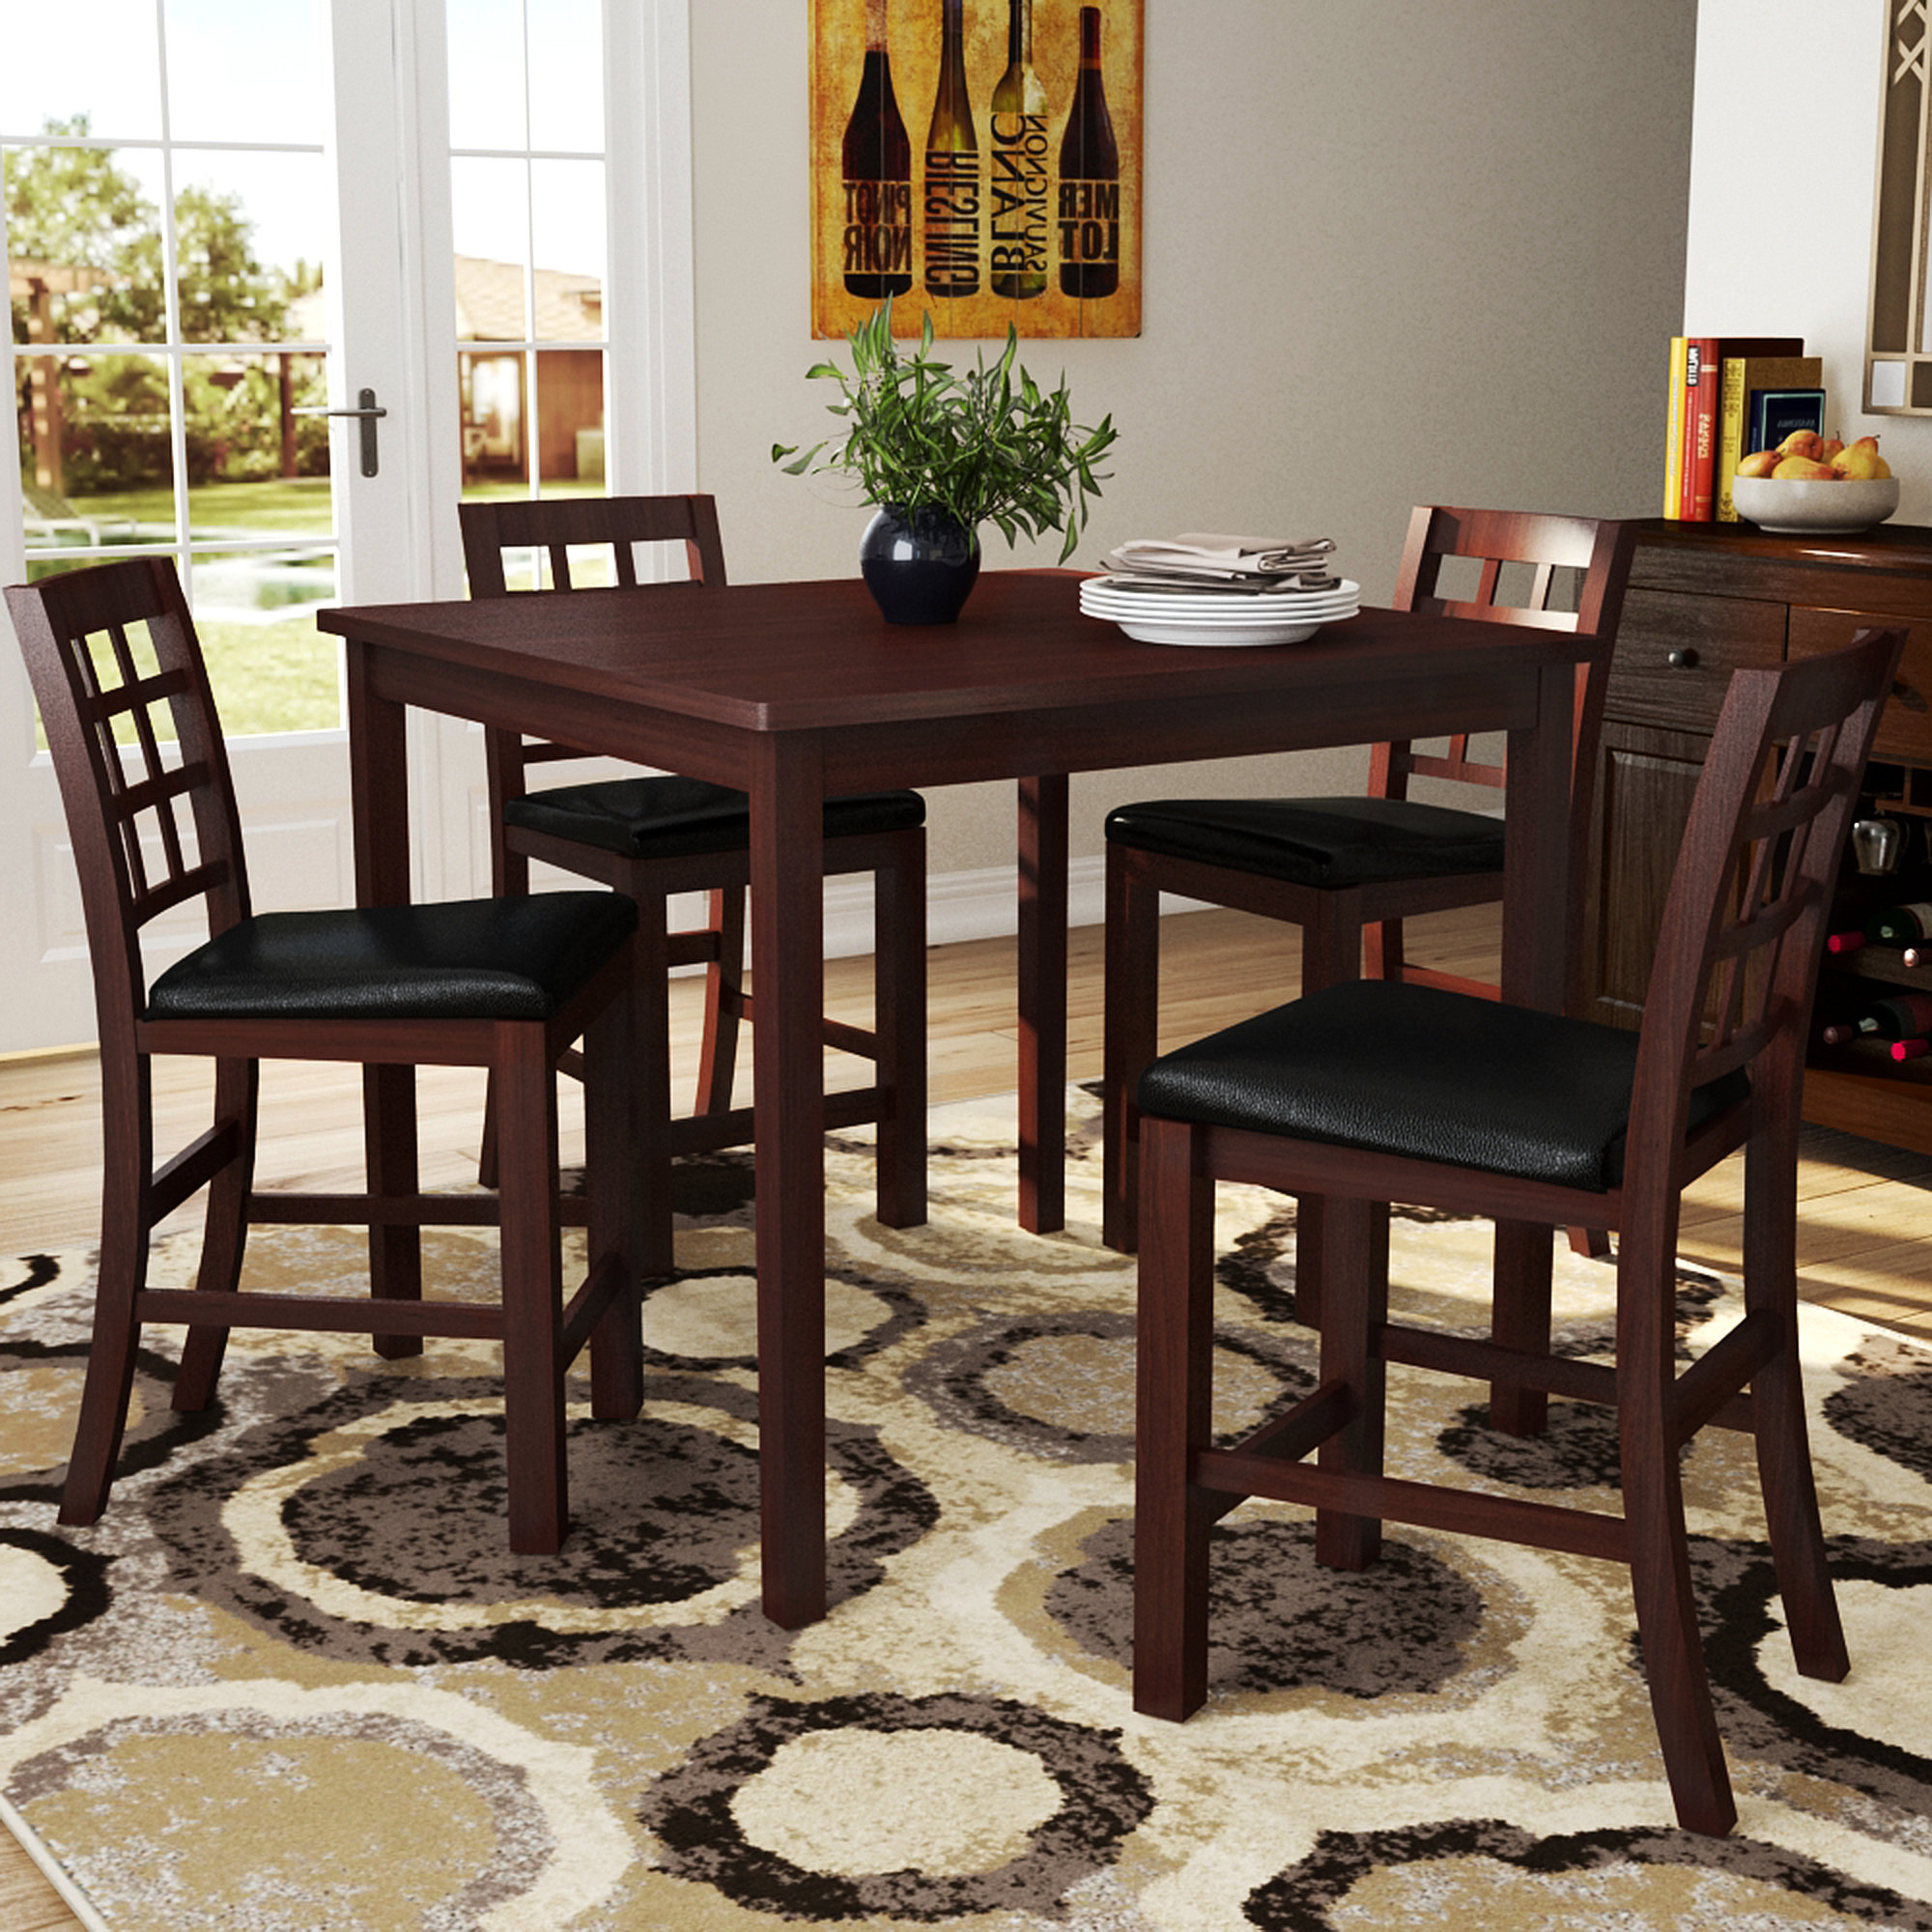 Penelope 3 Piece Counter Height Wood Dining Sets In Recent Red Barrel Studio Plymouth 5 Piece Counter Height Dining Set (View 11 of 25)